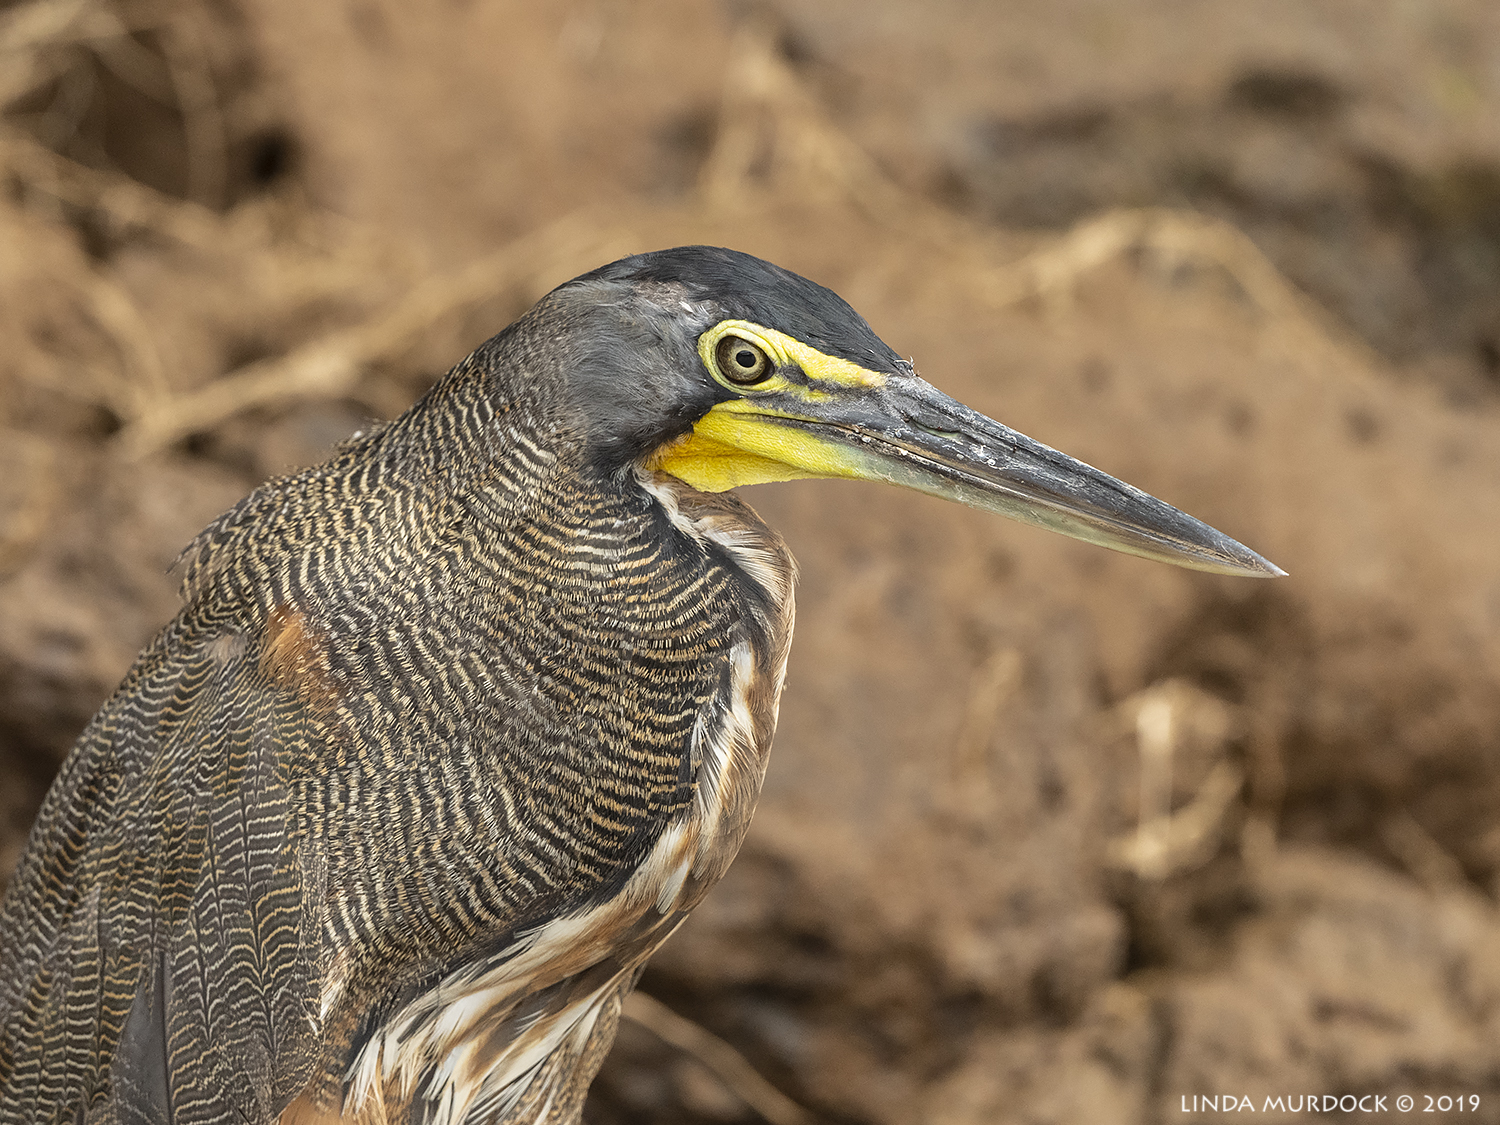 Adult Bare-throated Tiger Heron  Nikon D850 with Nikkor 500 f/5.6 PF ~ 1/2000 sec f/5.6 ISO 1000